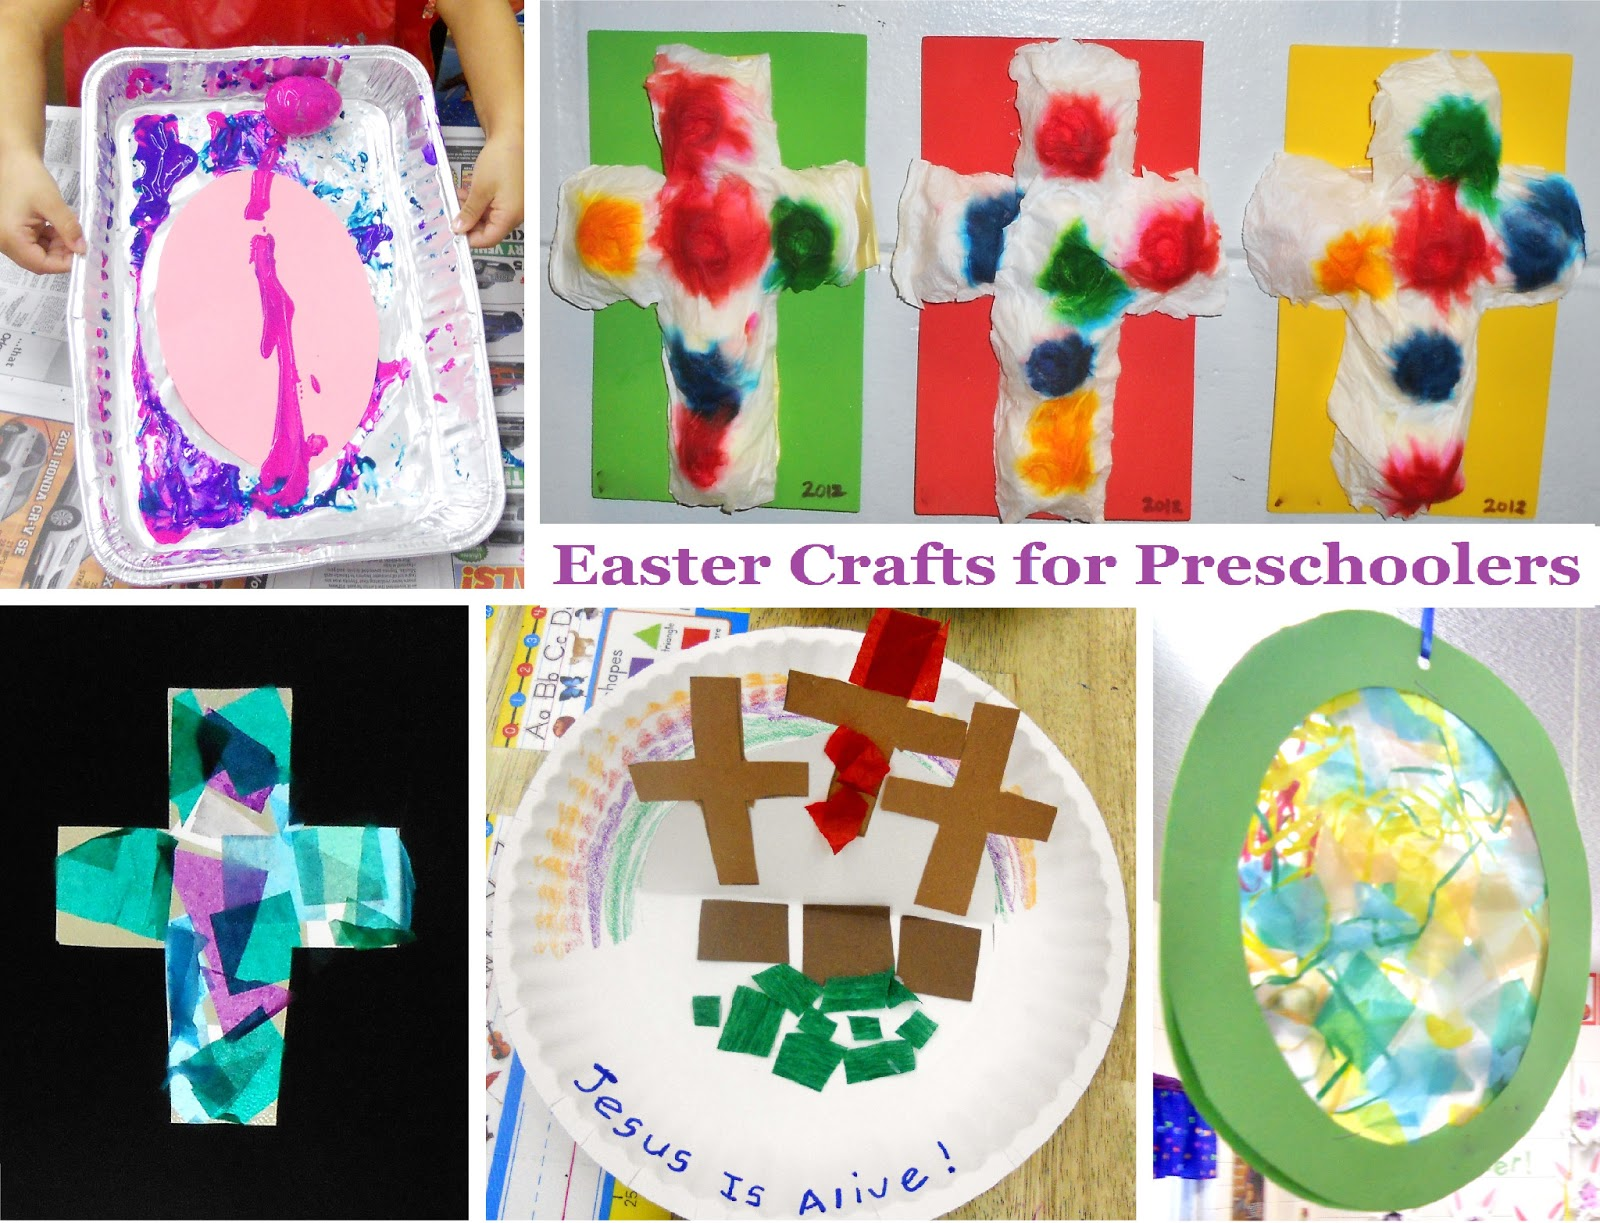 Princesses Pies Amp Preschool Pizzazz 4 Easter Crafts For